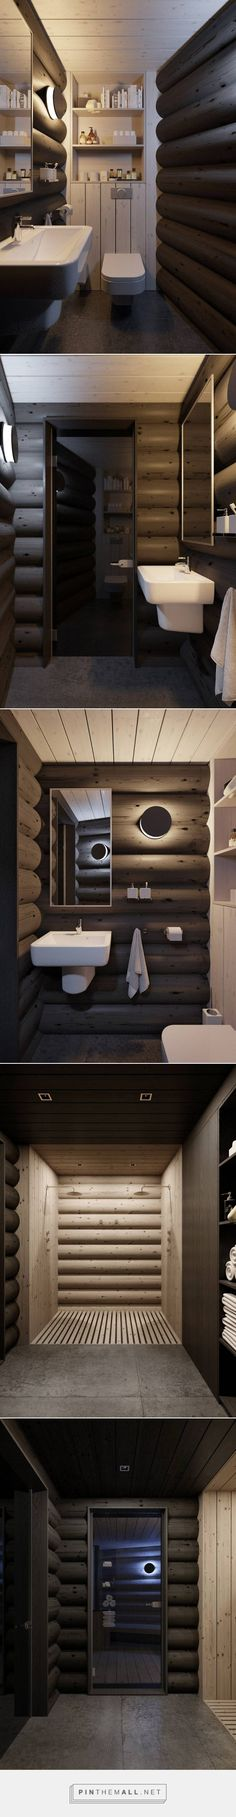 bathroom in a wooden house bathroom in a wooden # f . House Plans Mansion, Pool House Plans, Small House Plans, New Modern House, Modern House Plans, Cosy House, Pole Barn Homes, Cabin Interiors, Exterior House Colors